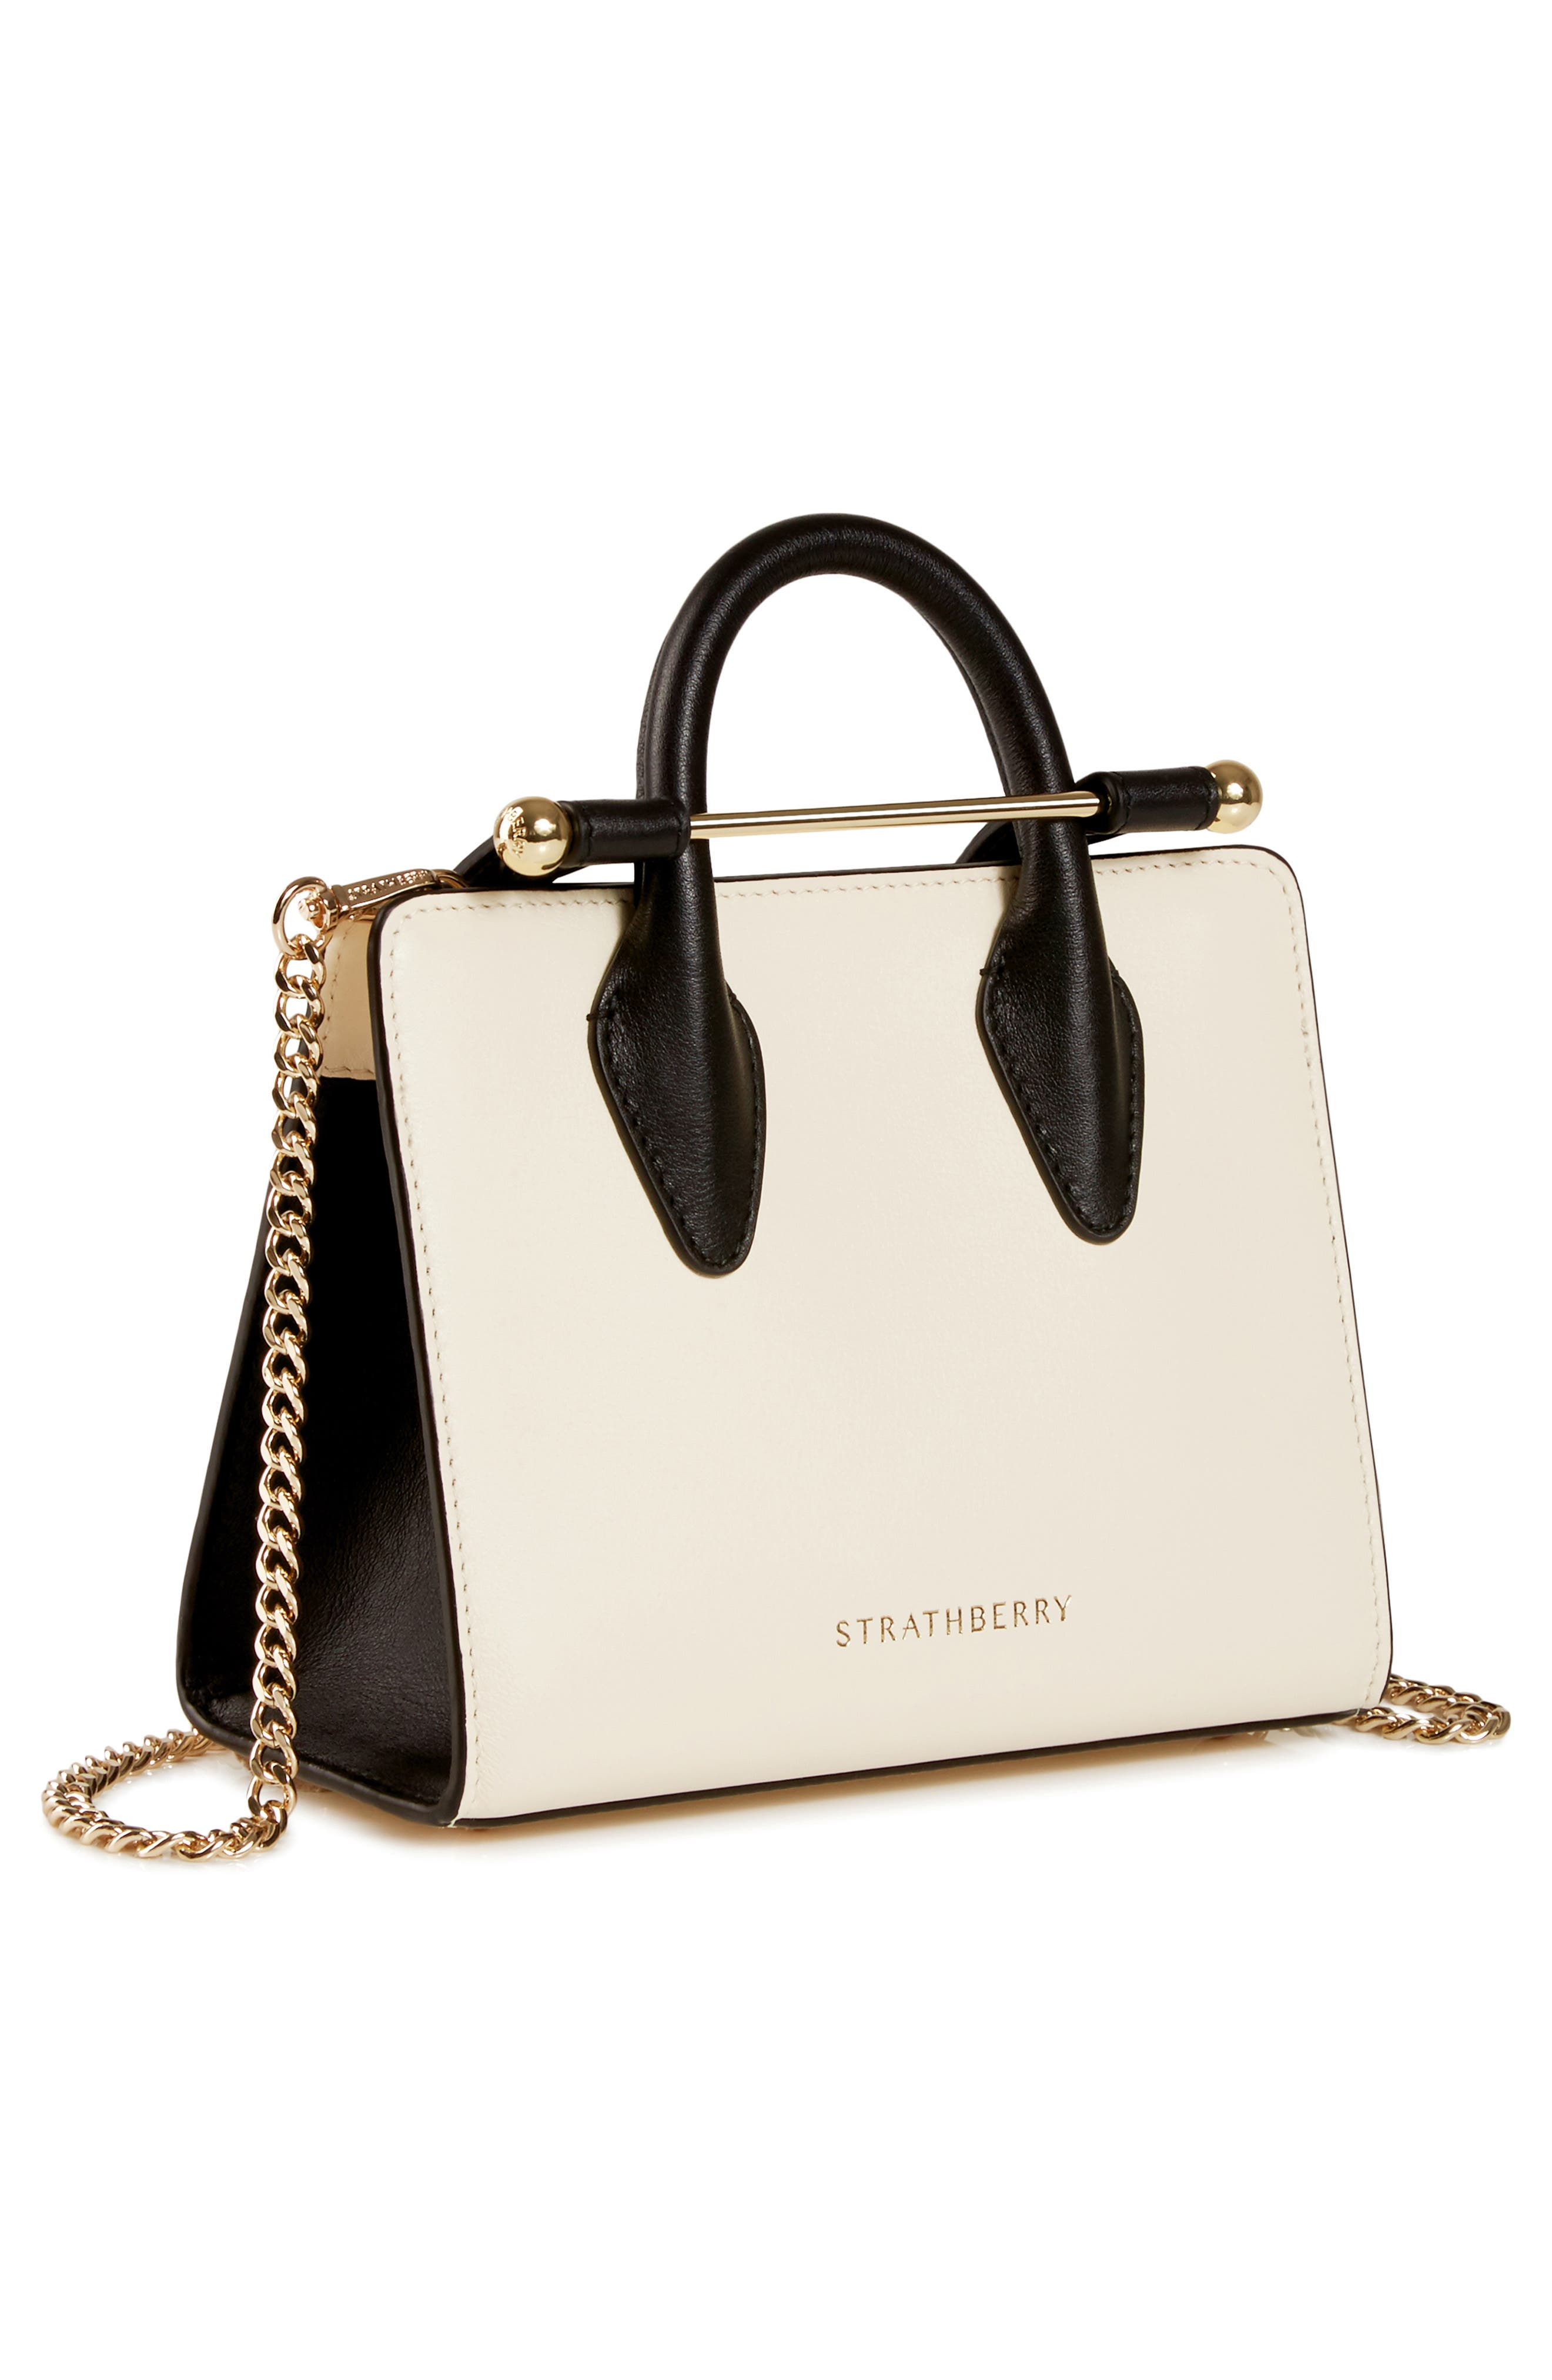 STRATHBERRY,                             Nano Bicolor Leather Tote,                             Alternate thumbnail 3, color,                             900